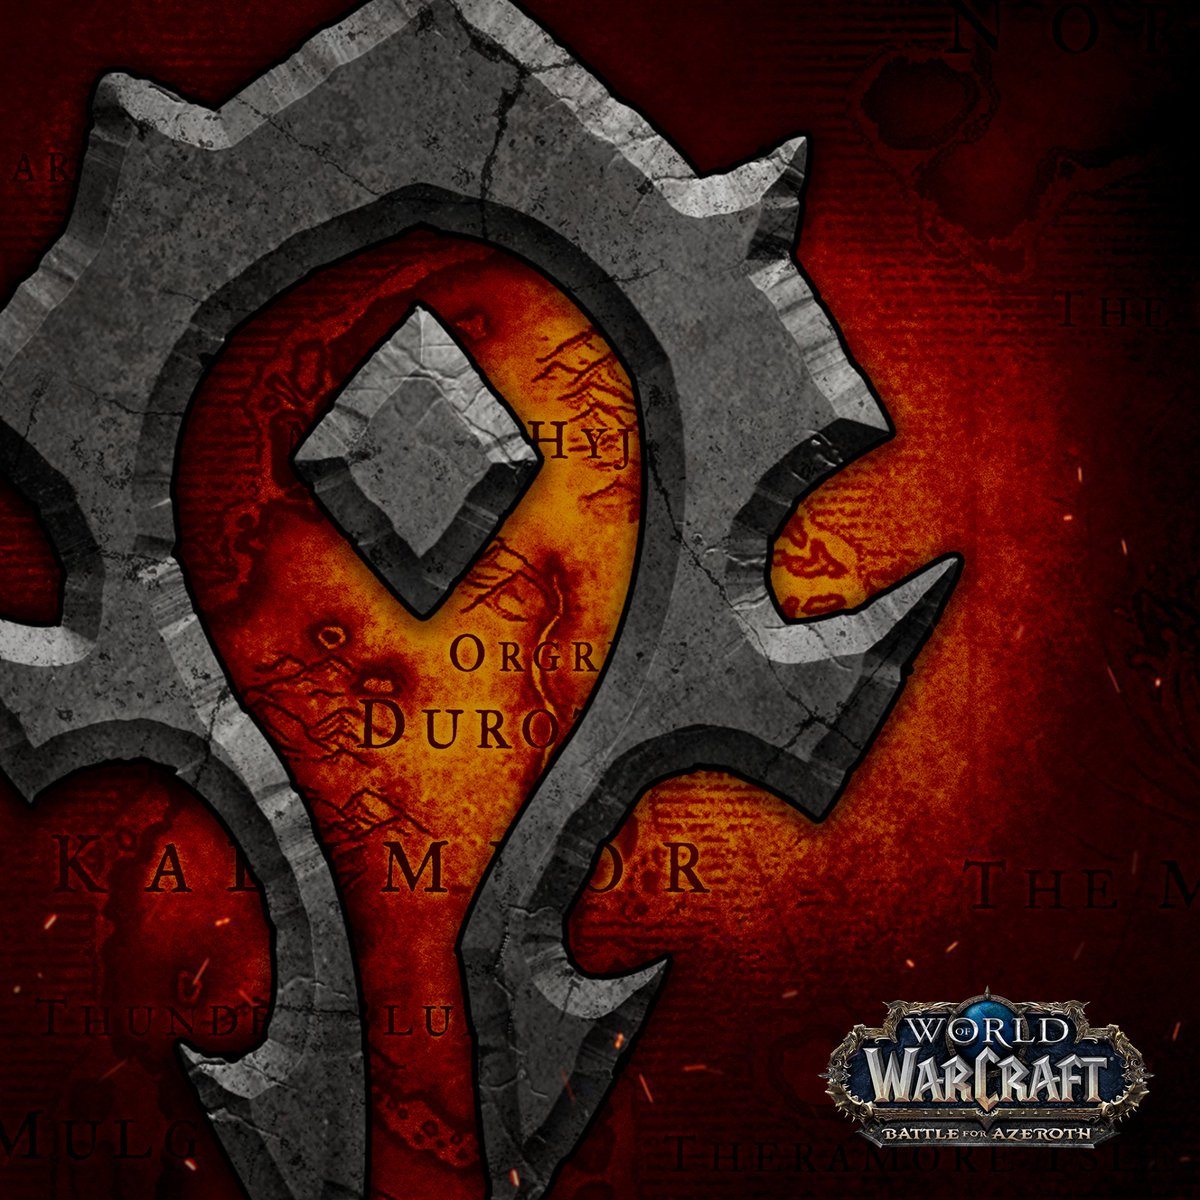 World Of Warcraft On Twitter For The Horde For The Alliance For